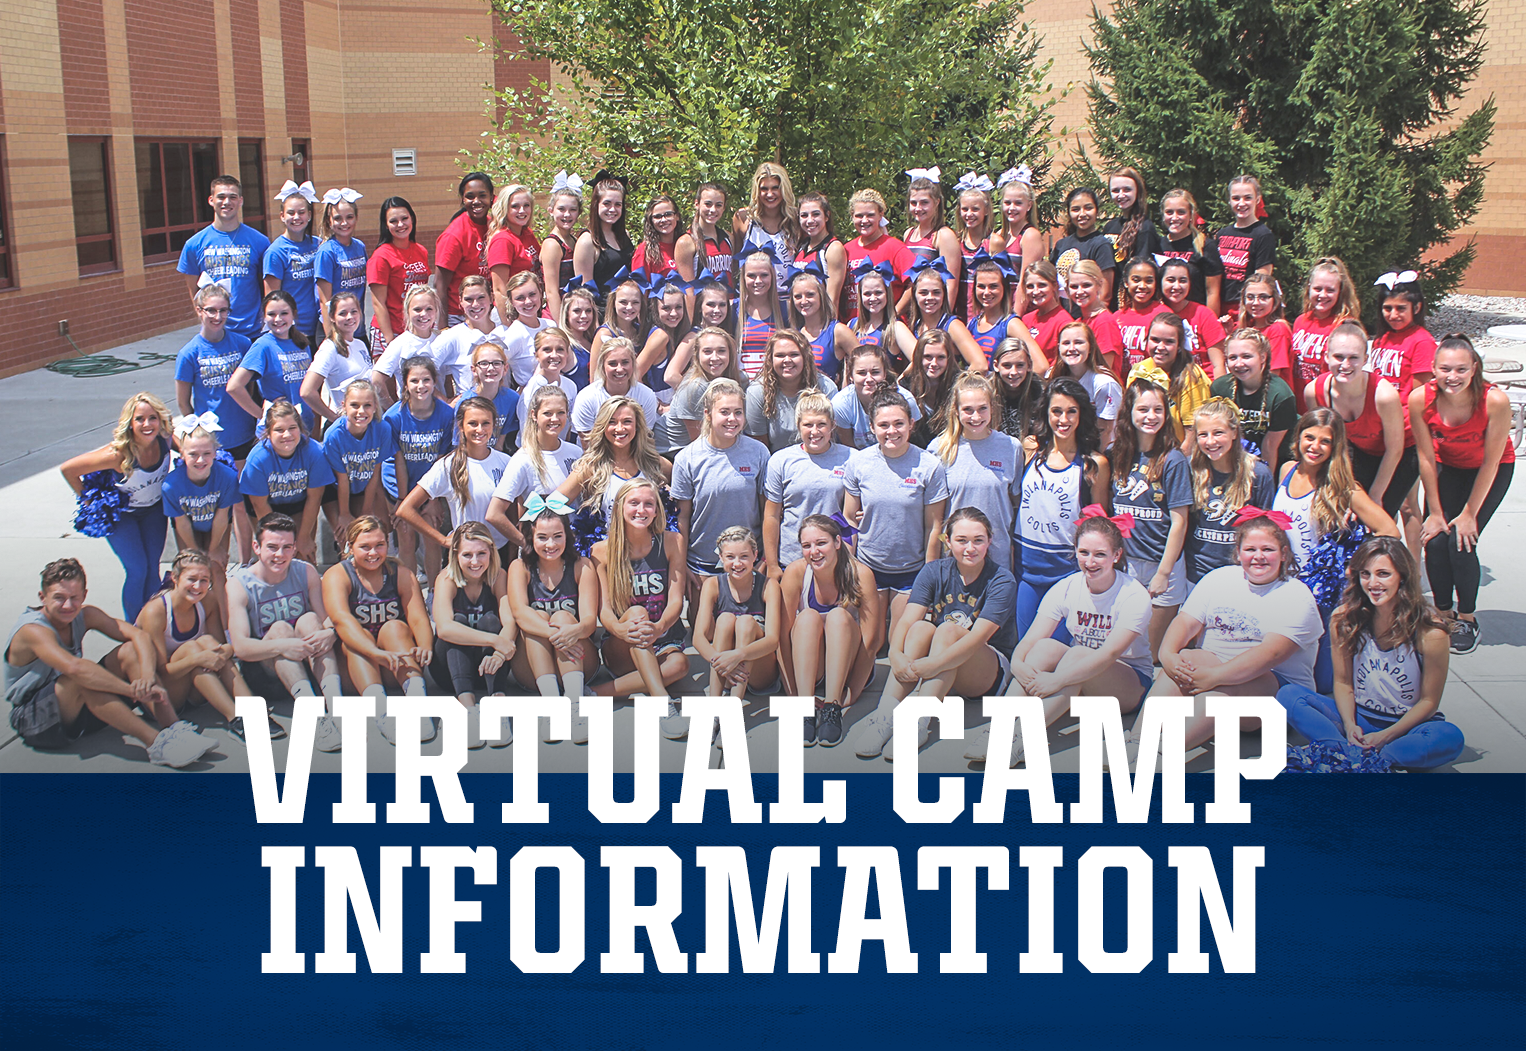 Indianapolis Colts Cheer Virtual Camp Information